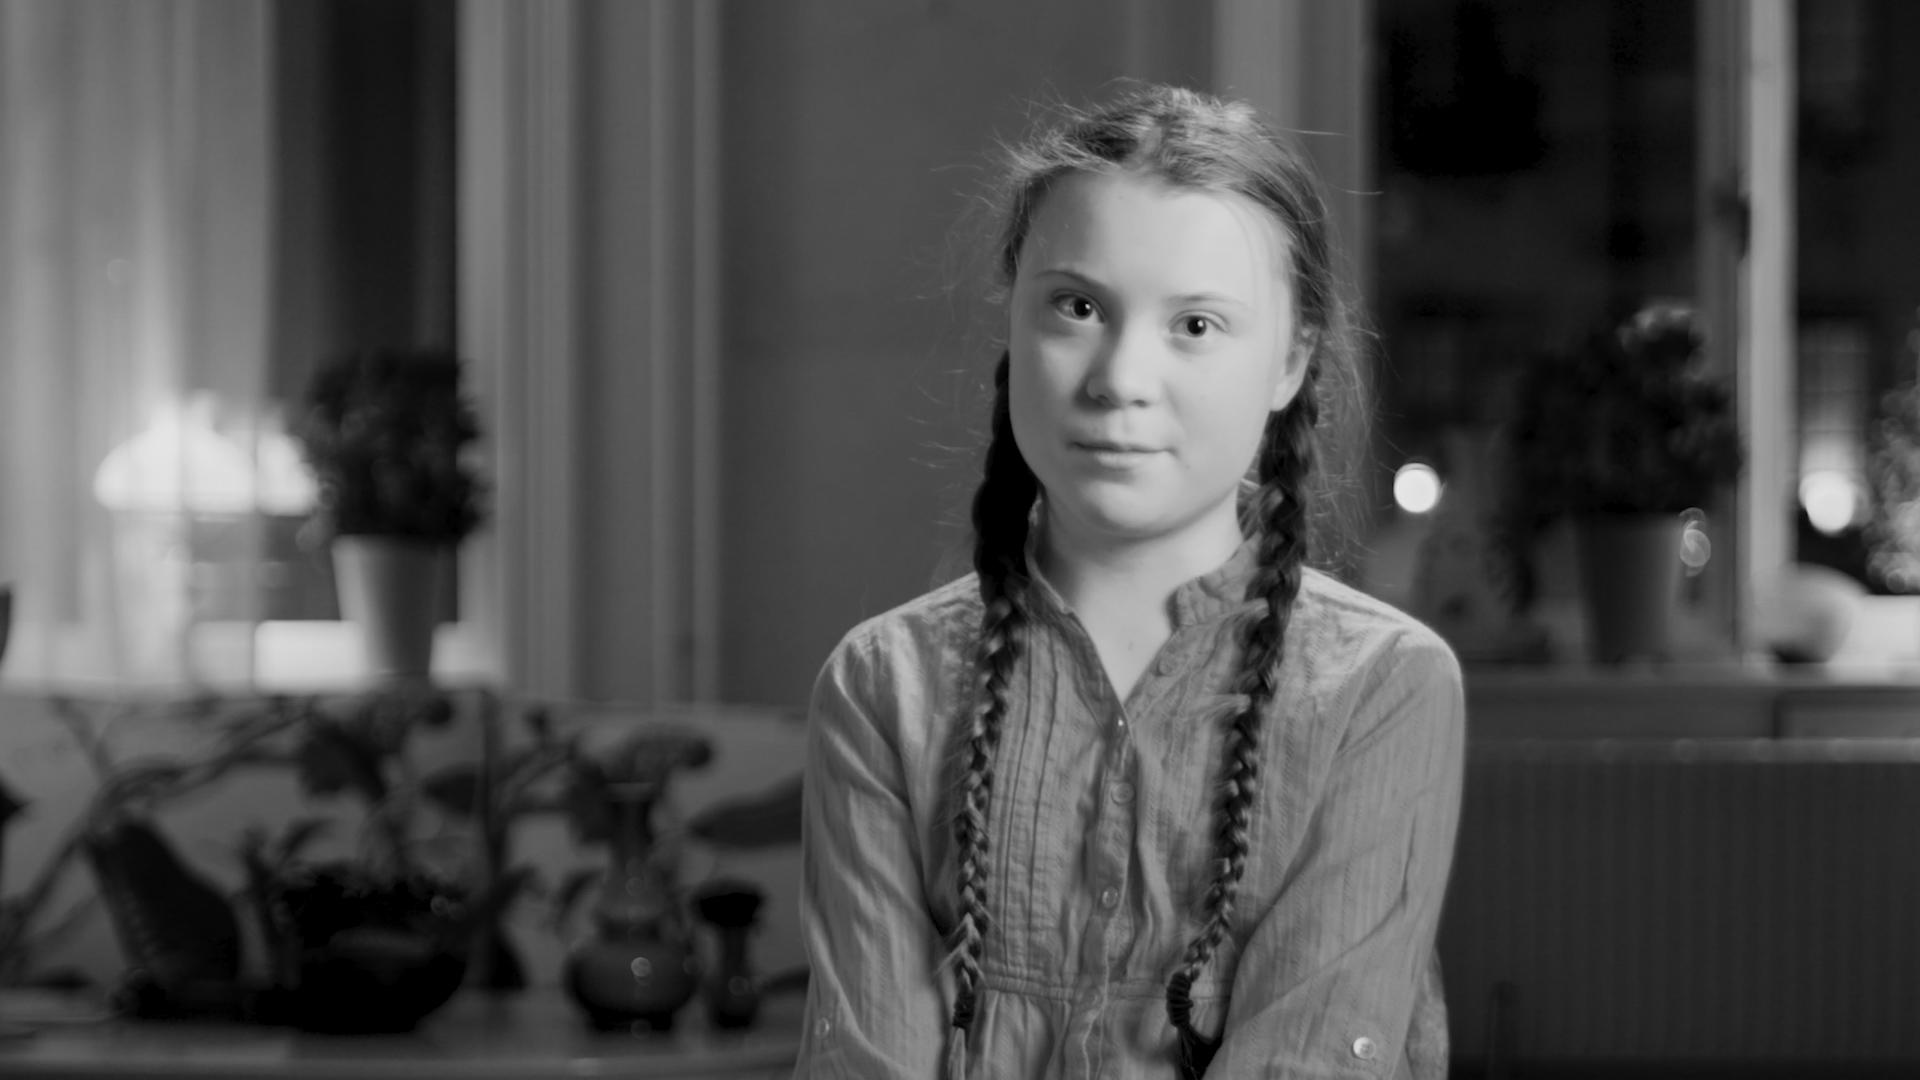 greta thunberg - photo #29